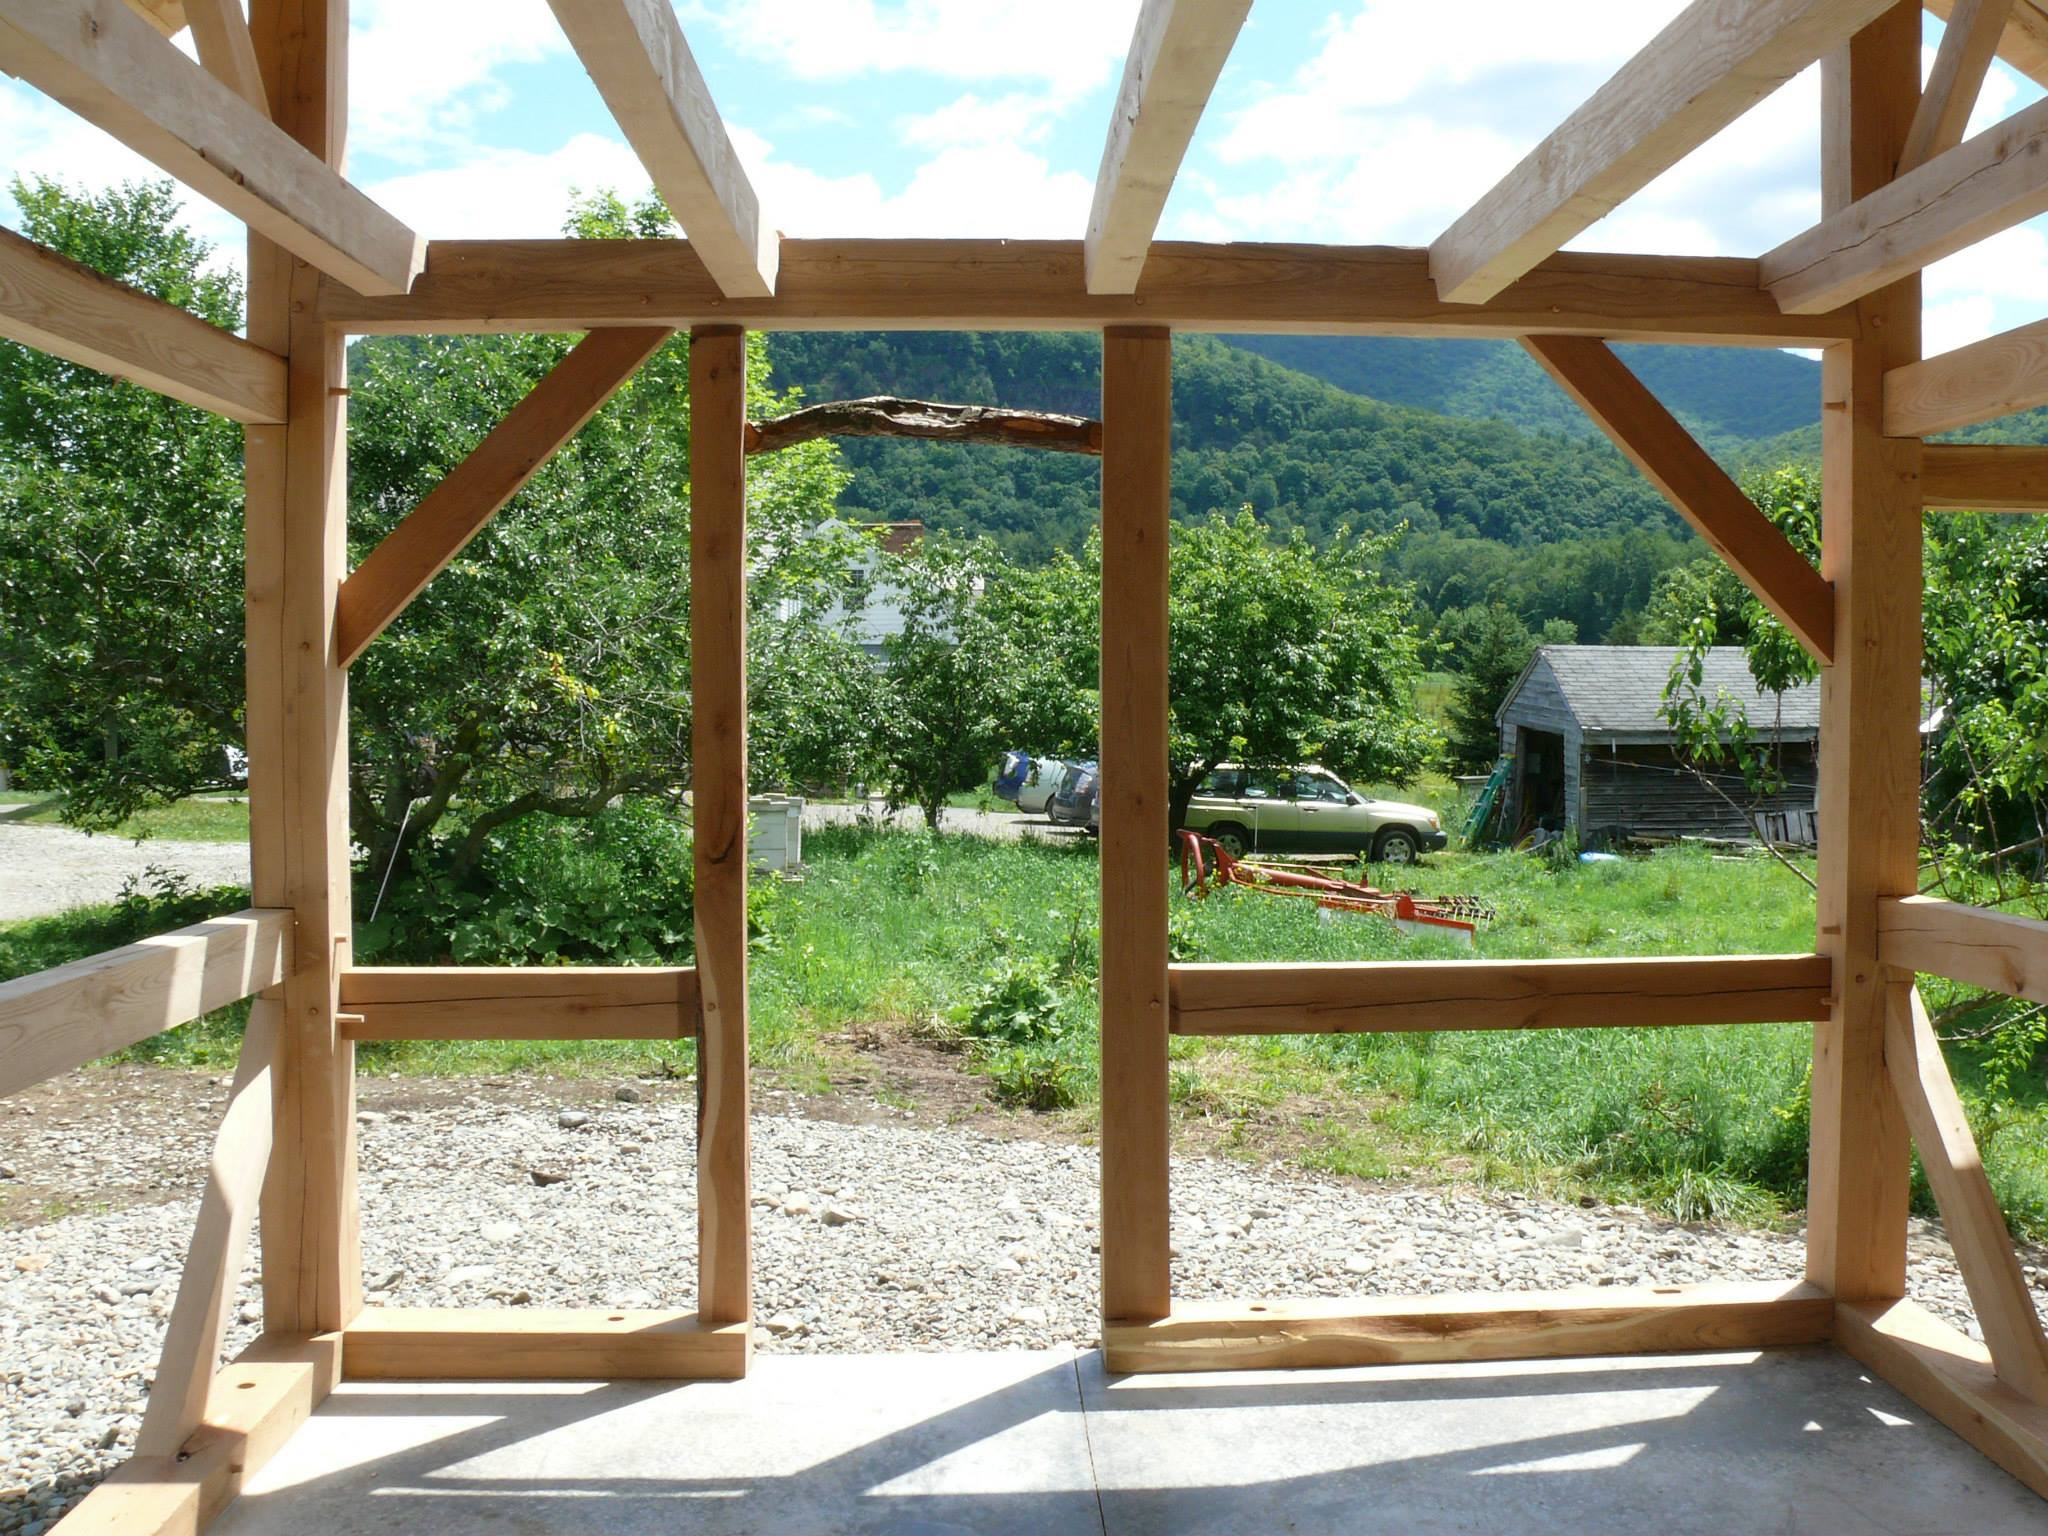 Plumb tree door header in timber frame sugar house green mountain timber frames